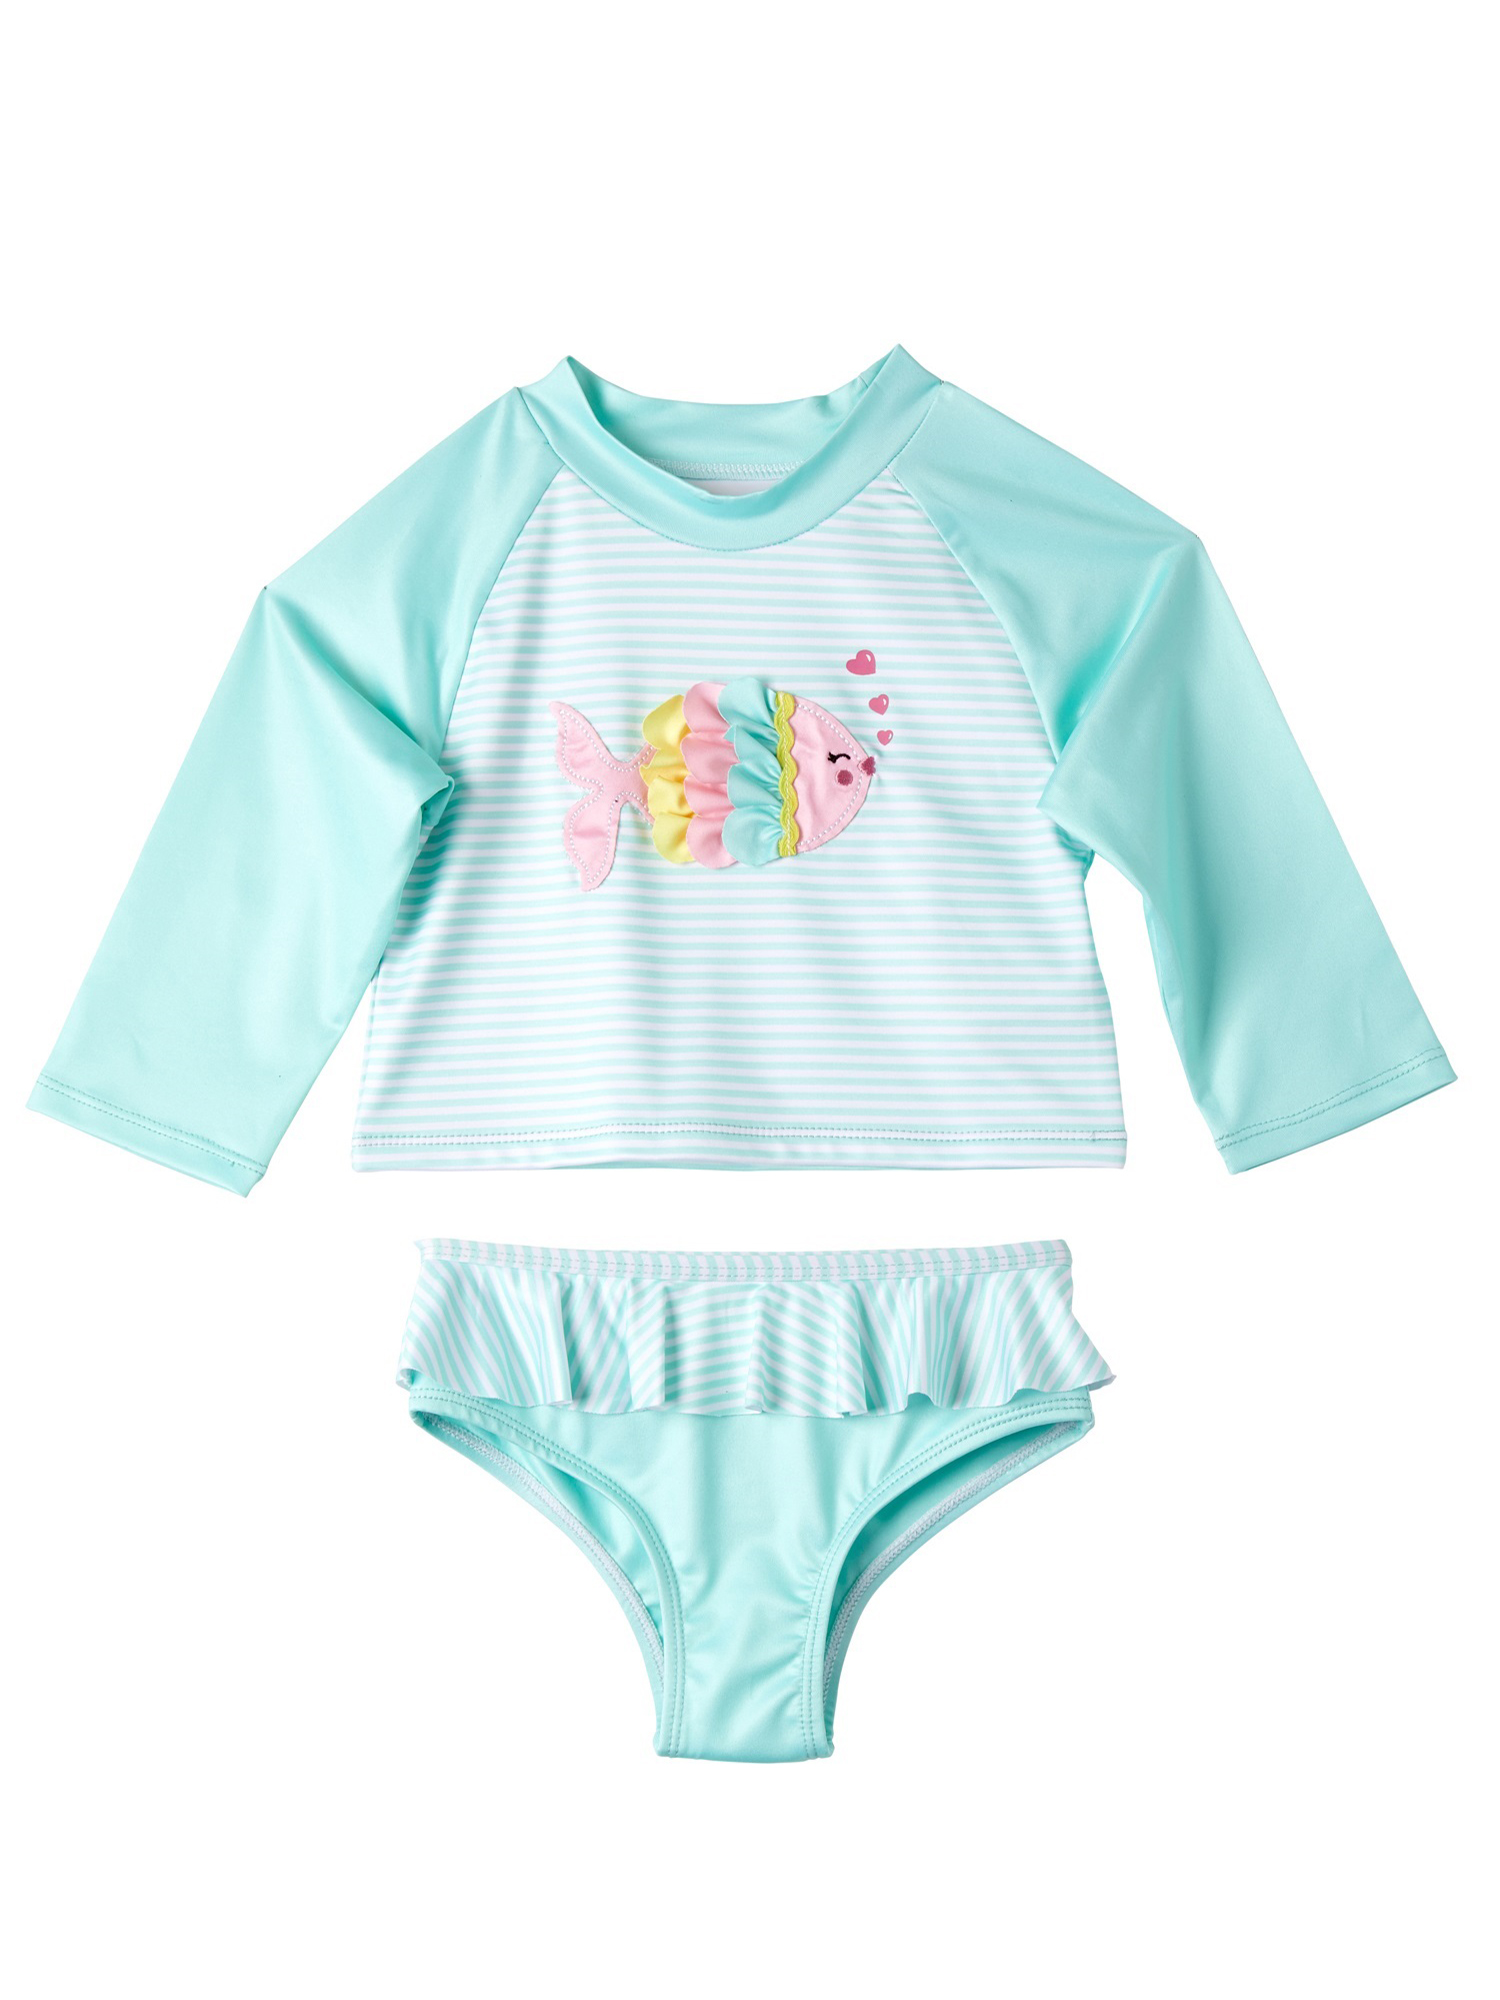 Navy Unicorn Size Toddler 4T Wippette Baby Girls 2-Piece Rash Guard and Bikini Swuimsuit Set Infant//Toddlers